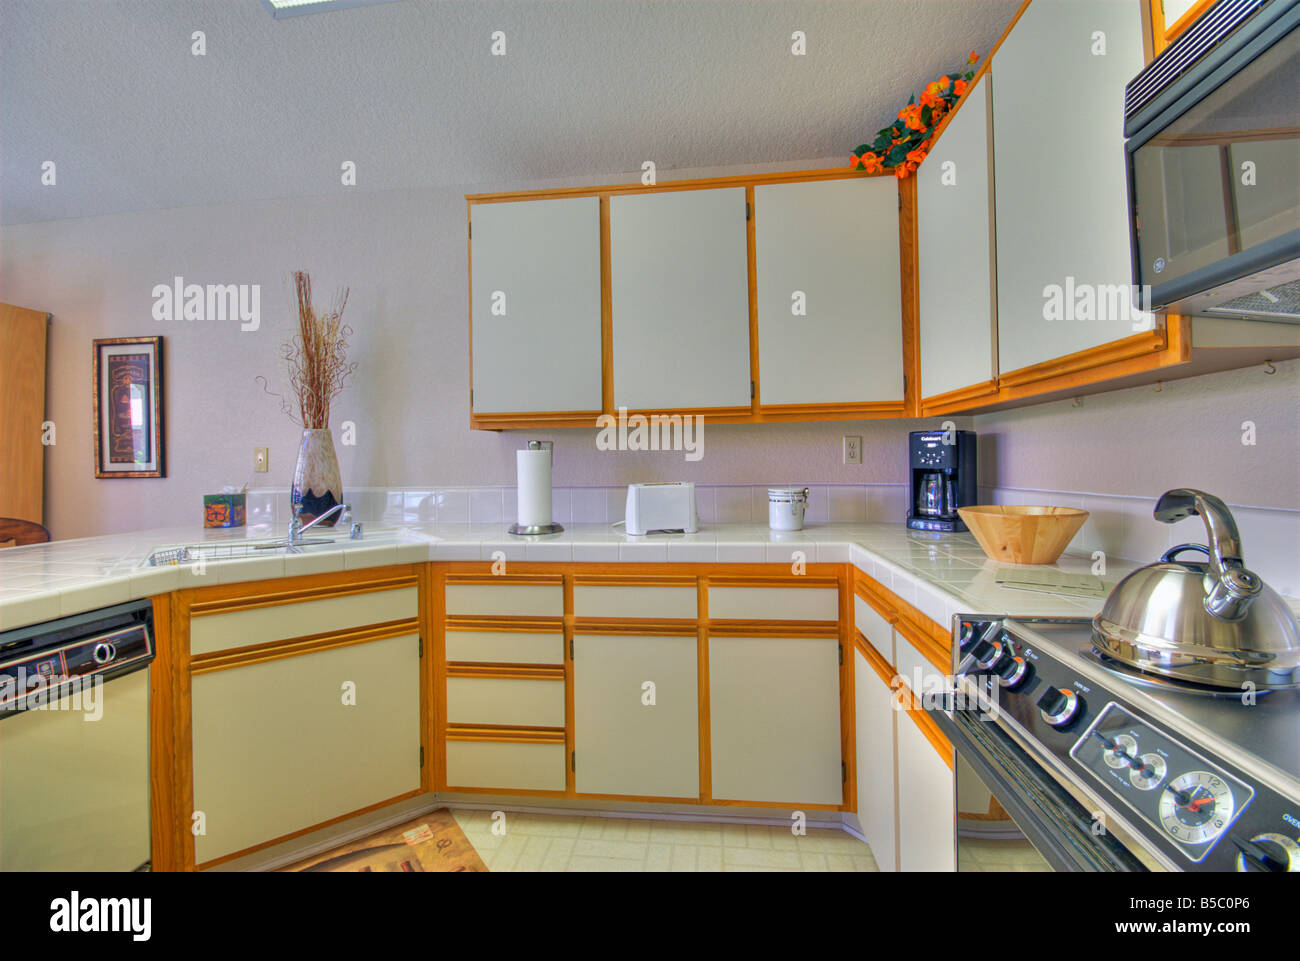 Oasis Country Club, Palm Desert Kitchen Interior White Wood Trim HDR  Lighting Available Light House Home Appliances Horizontal